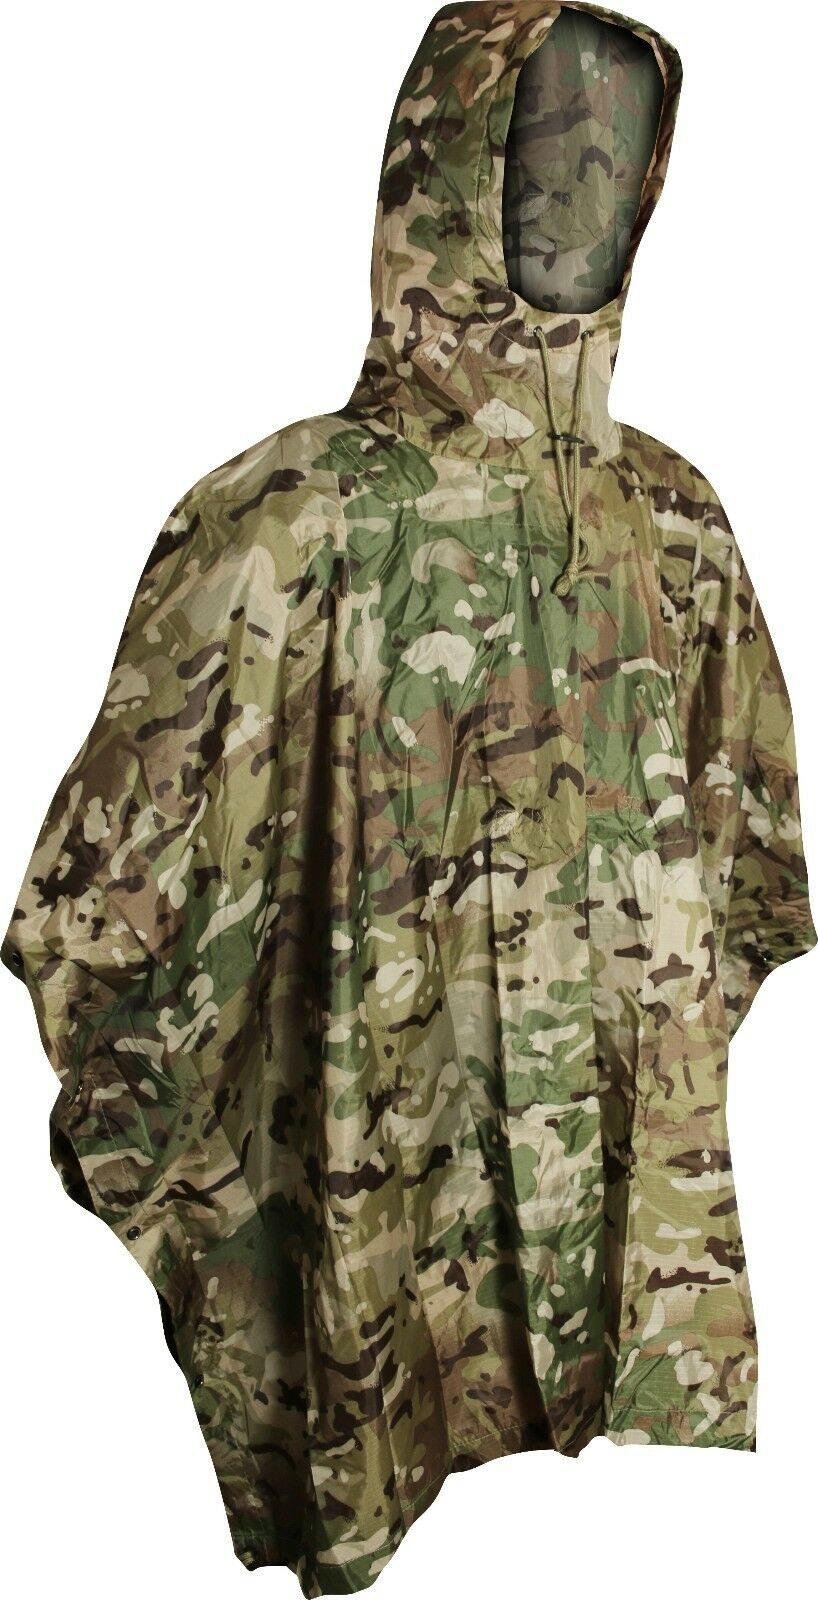 V-Cam Camouflage Waterproof Fishing Hunting Poncho Poncho Hunting - MTP Multicam compatible d8834e